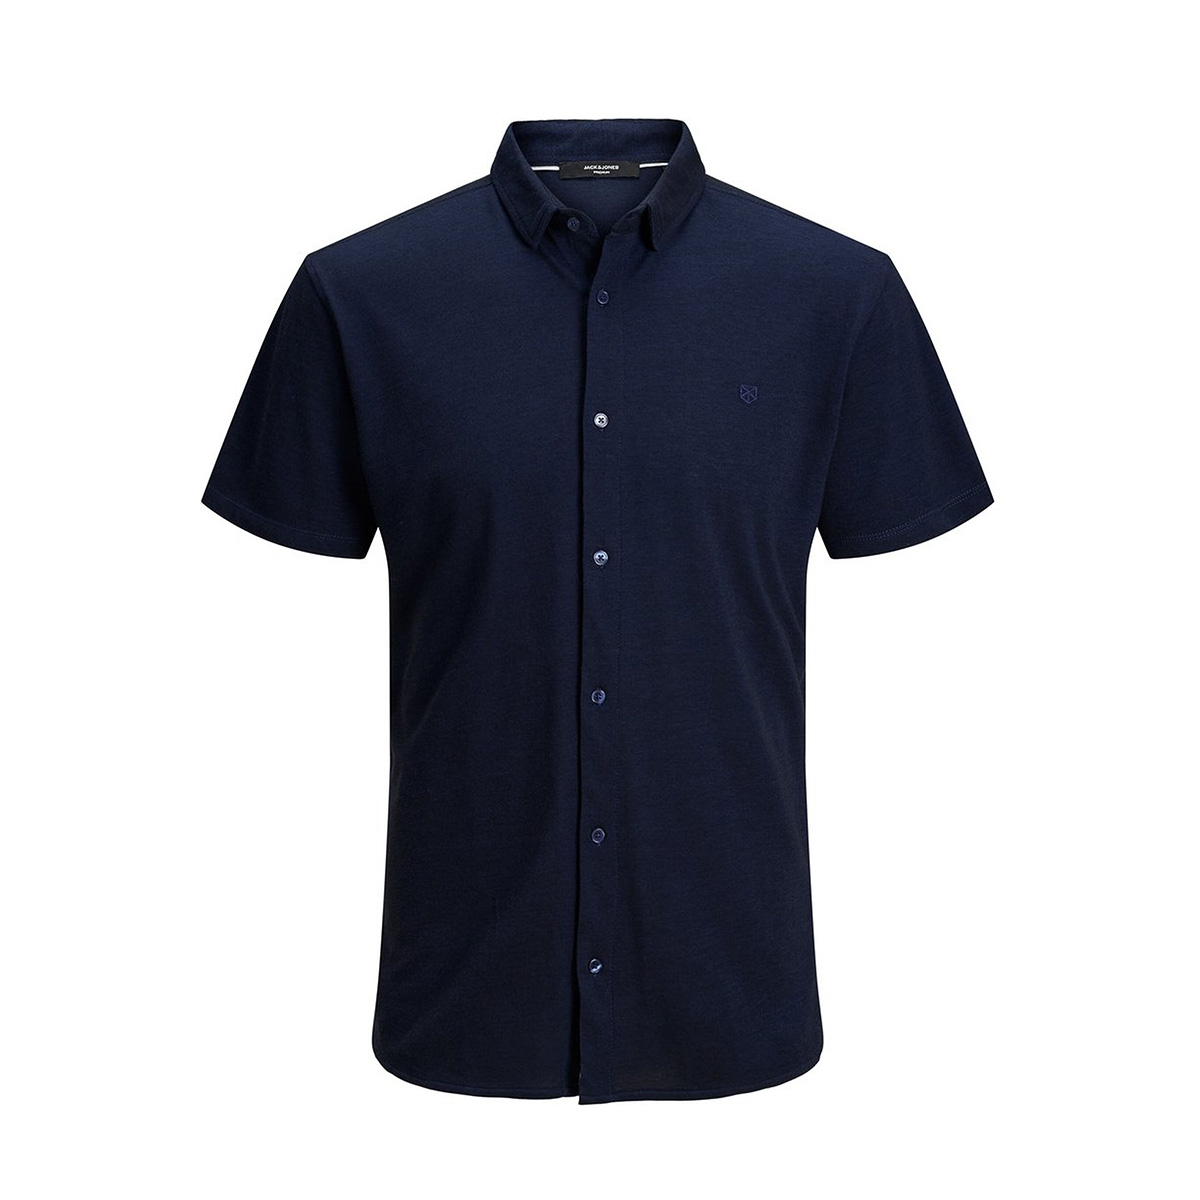 jprjace bla. ss jersey shirt 12171636 jack & jones overhemd blue depths